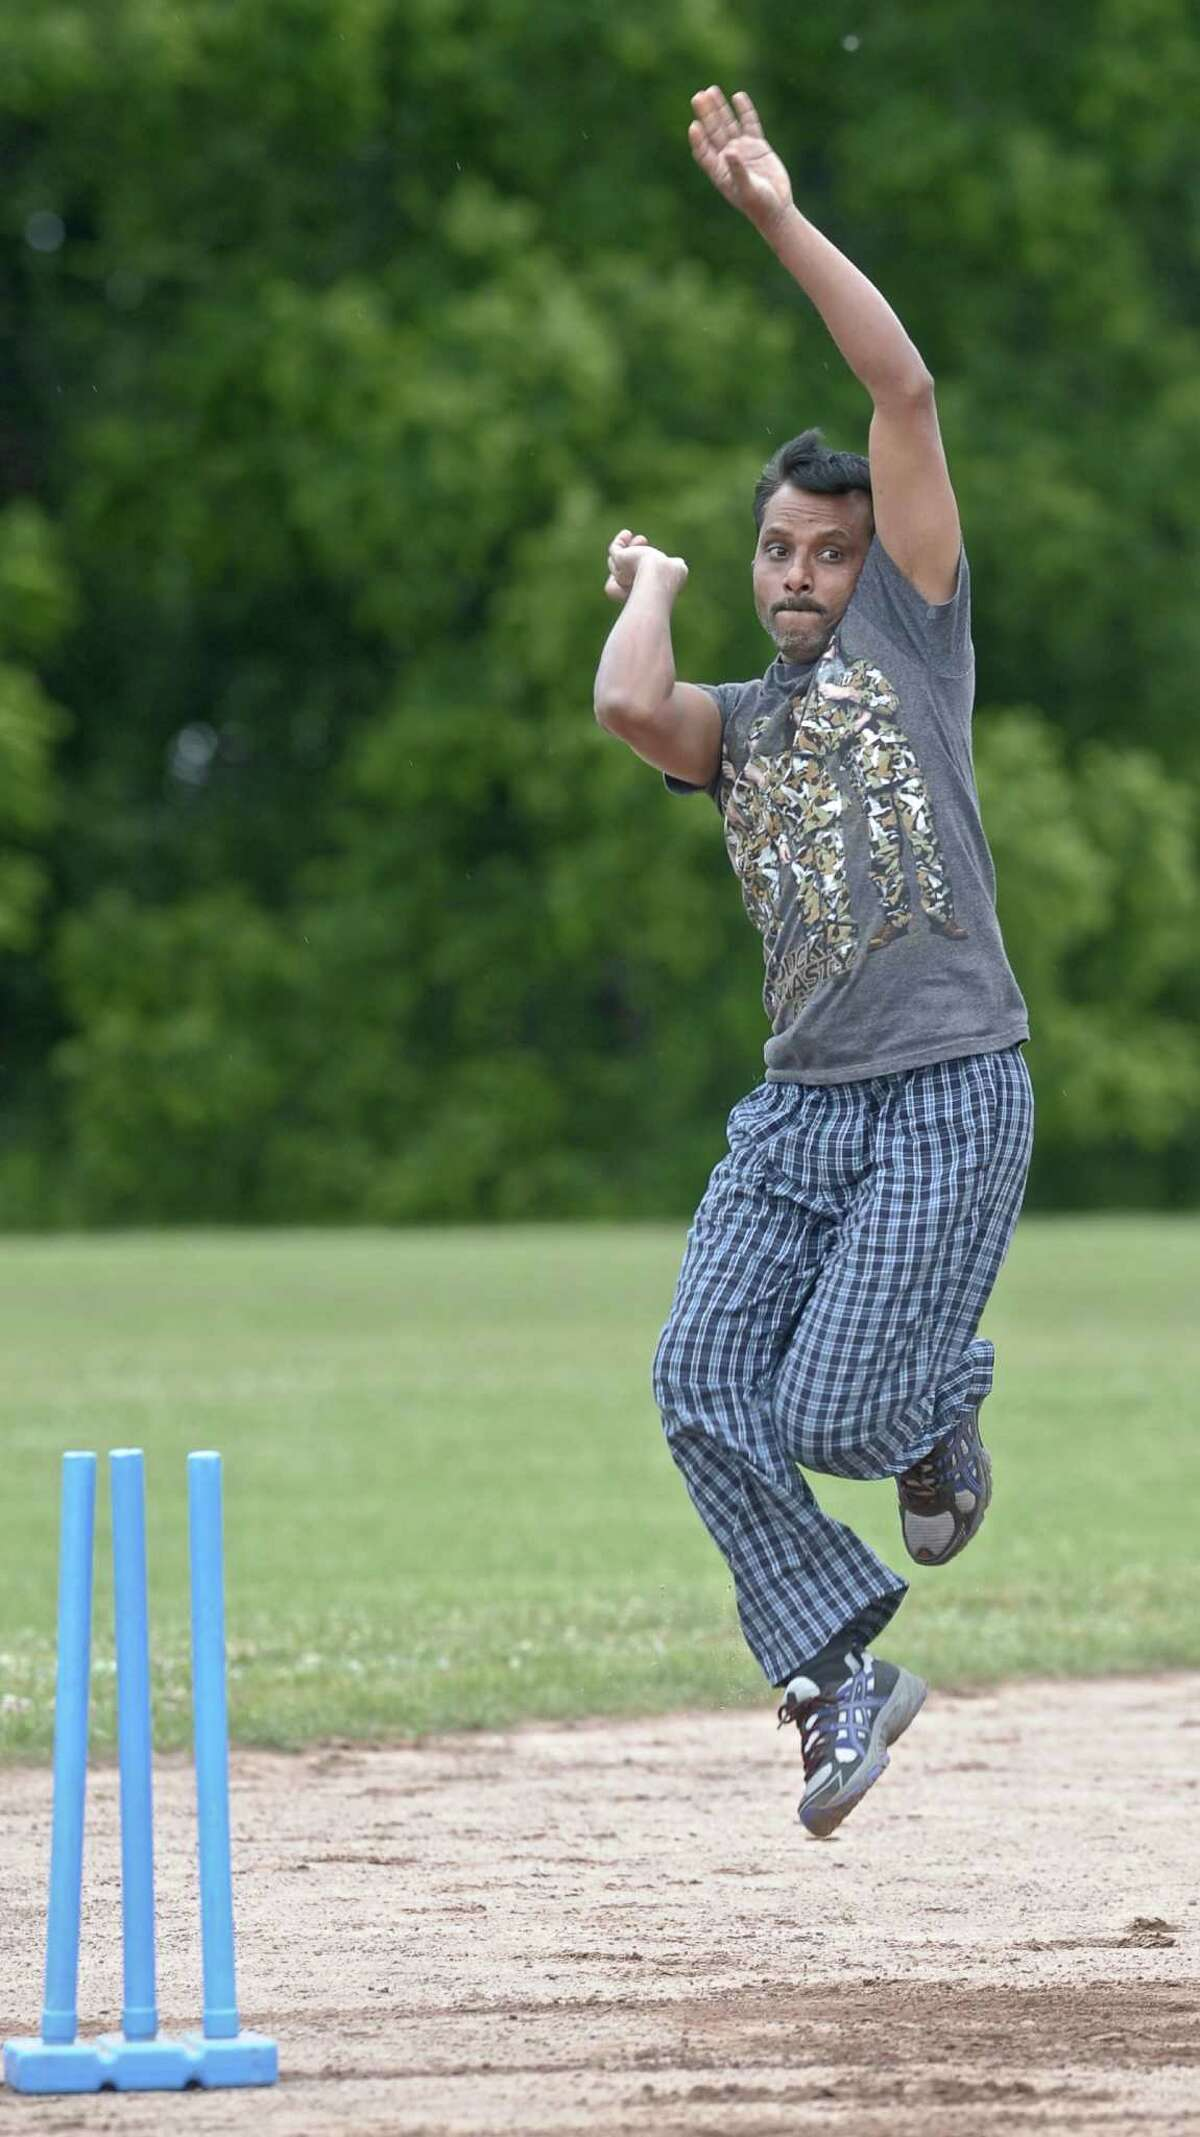 Bowler Mallesh Pittla winds uo to deliver the ball during a Brookside Cricket Club practice.